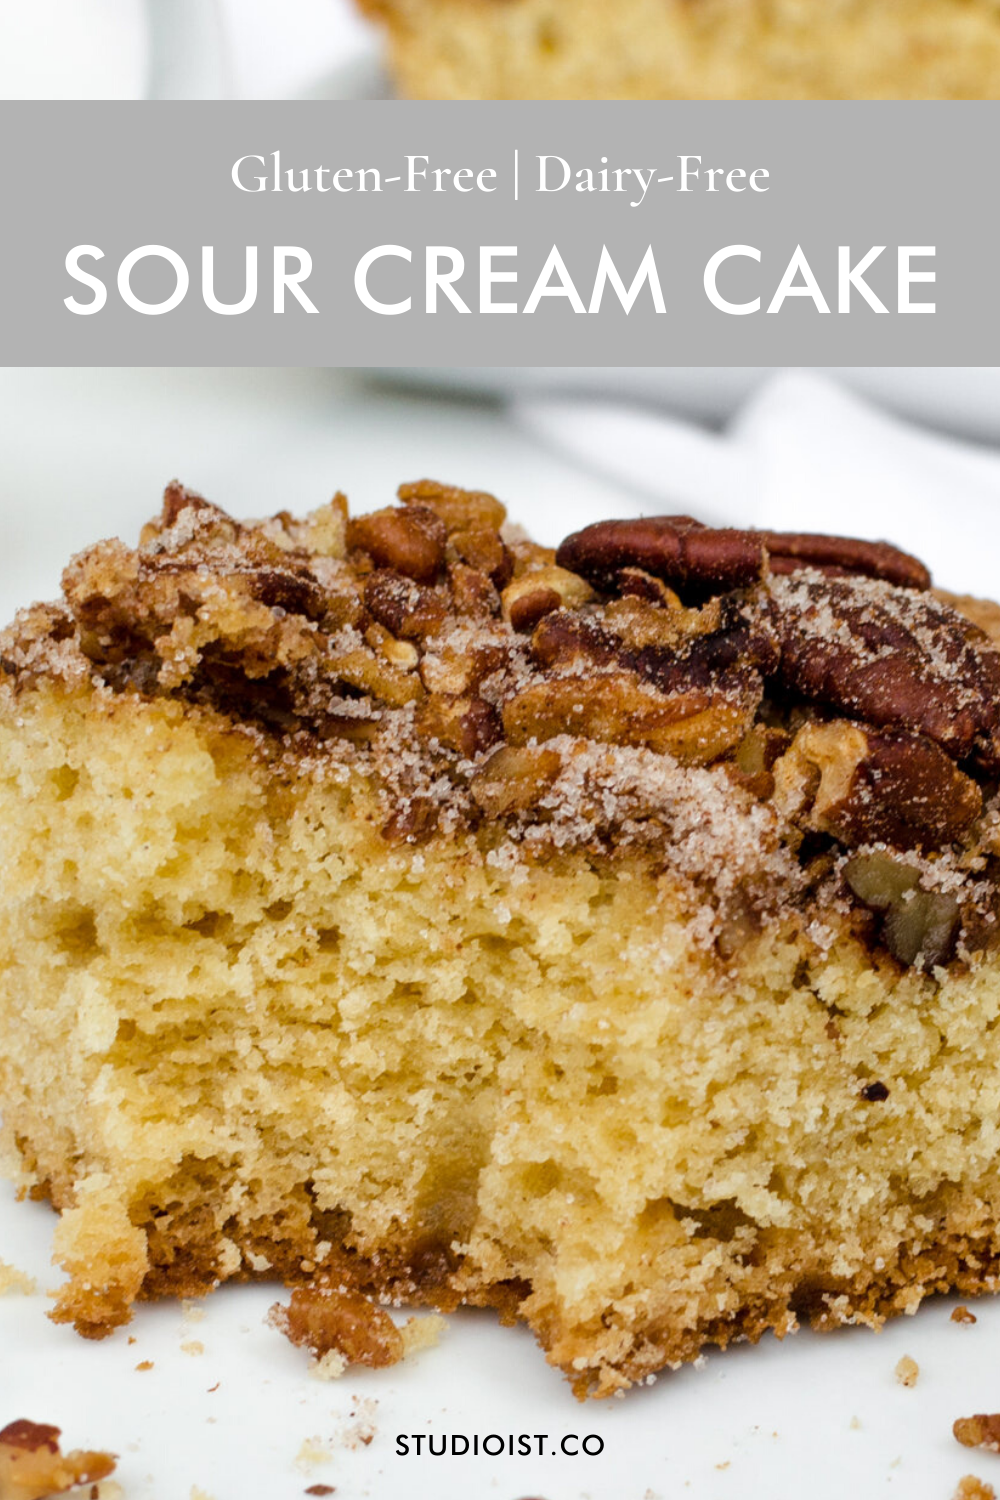 Gluten Free Dairy Free Sour Cream Cake Studioist In 2020 Sour Cream Cake Sour Cream Recipes Healthy Dessert Recipes Easy